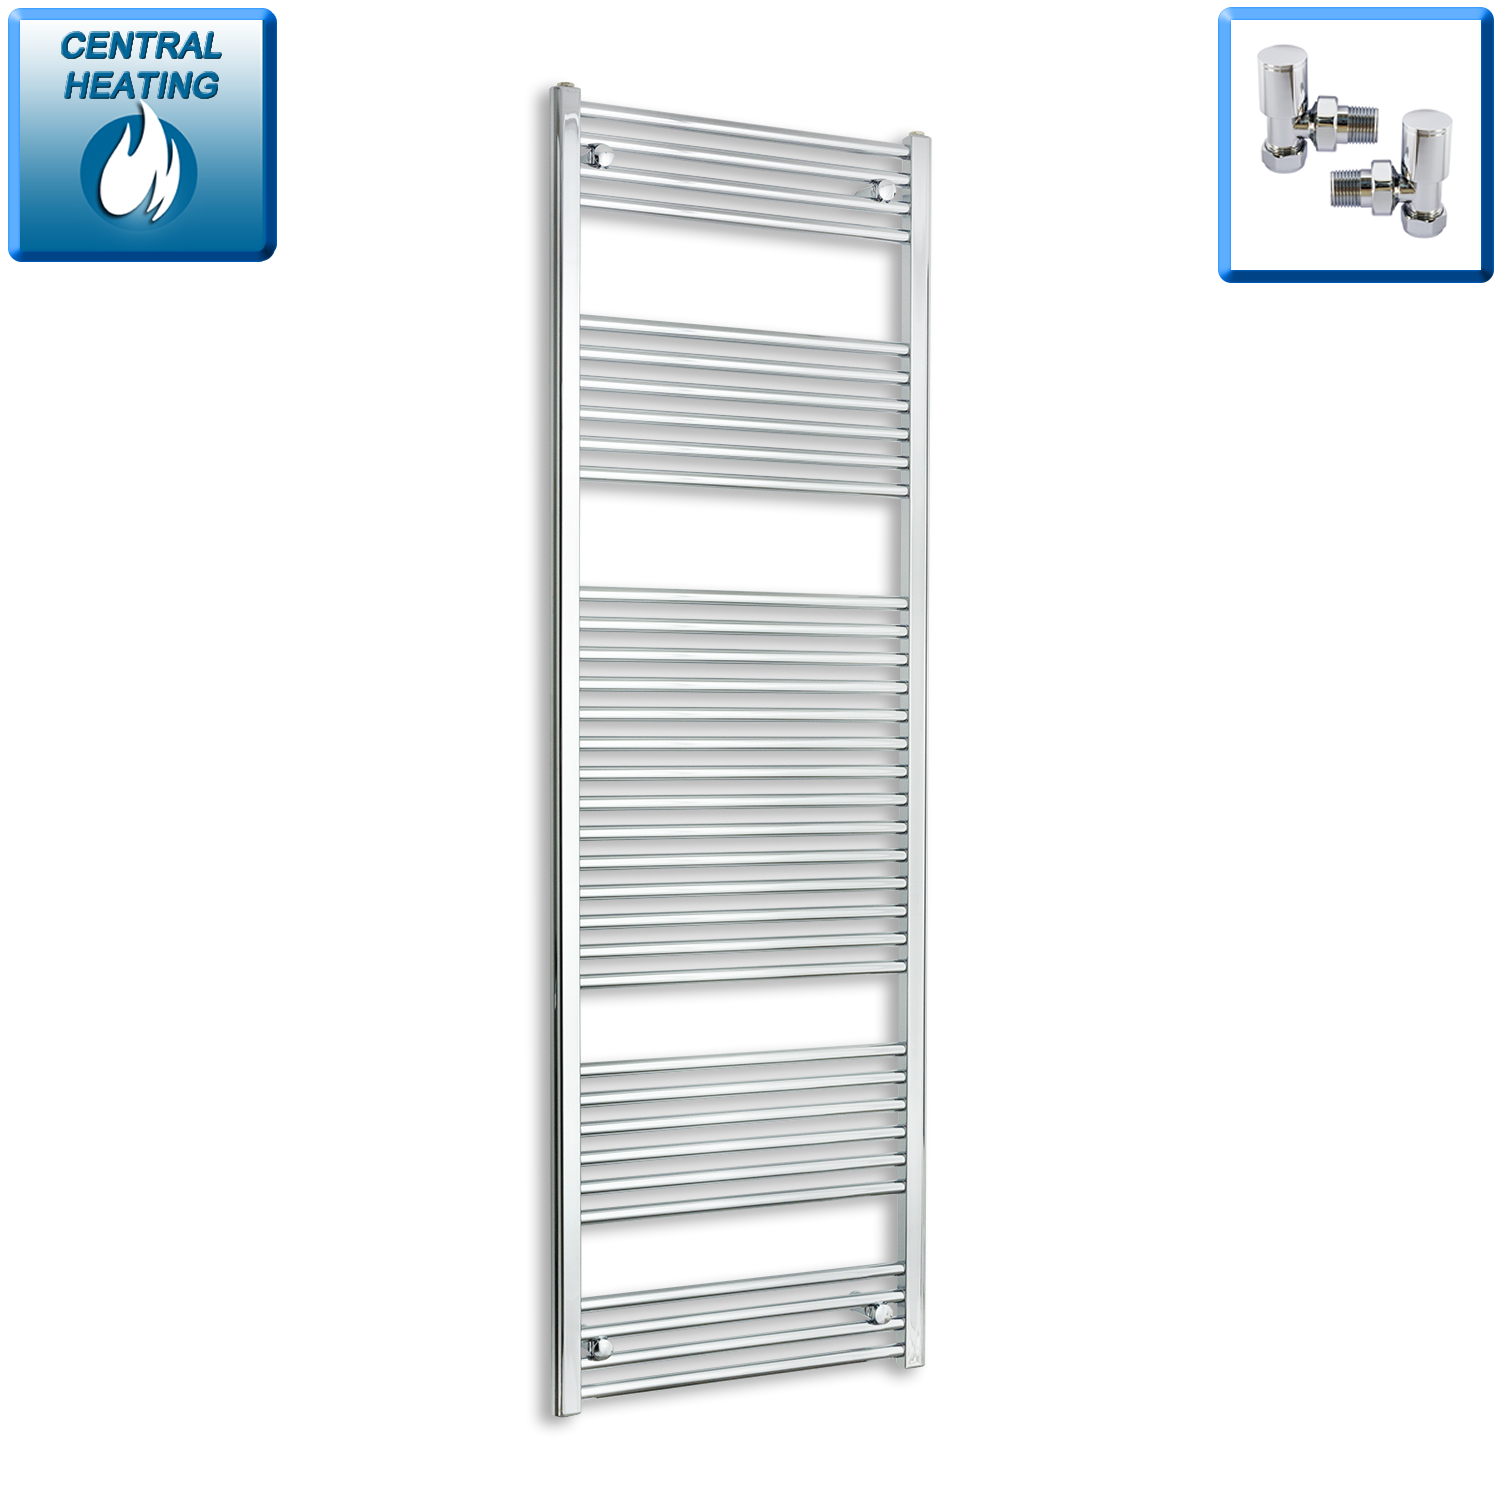 500mm Wide 1800mm High Straight Chrome Heated Towel Rail Radiator HTR,With Angled Valve